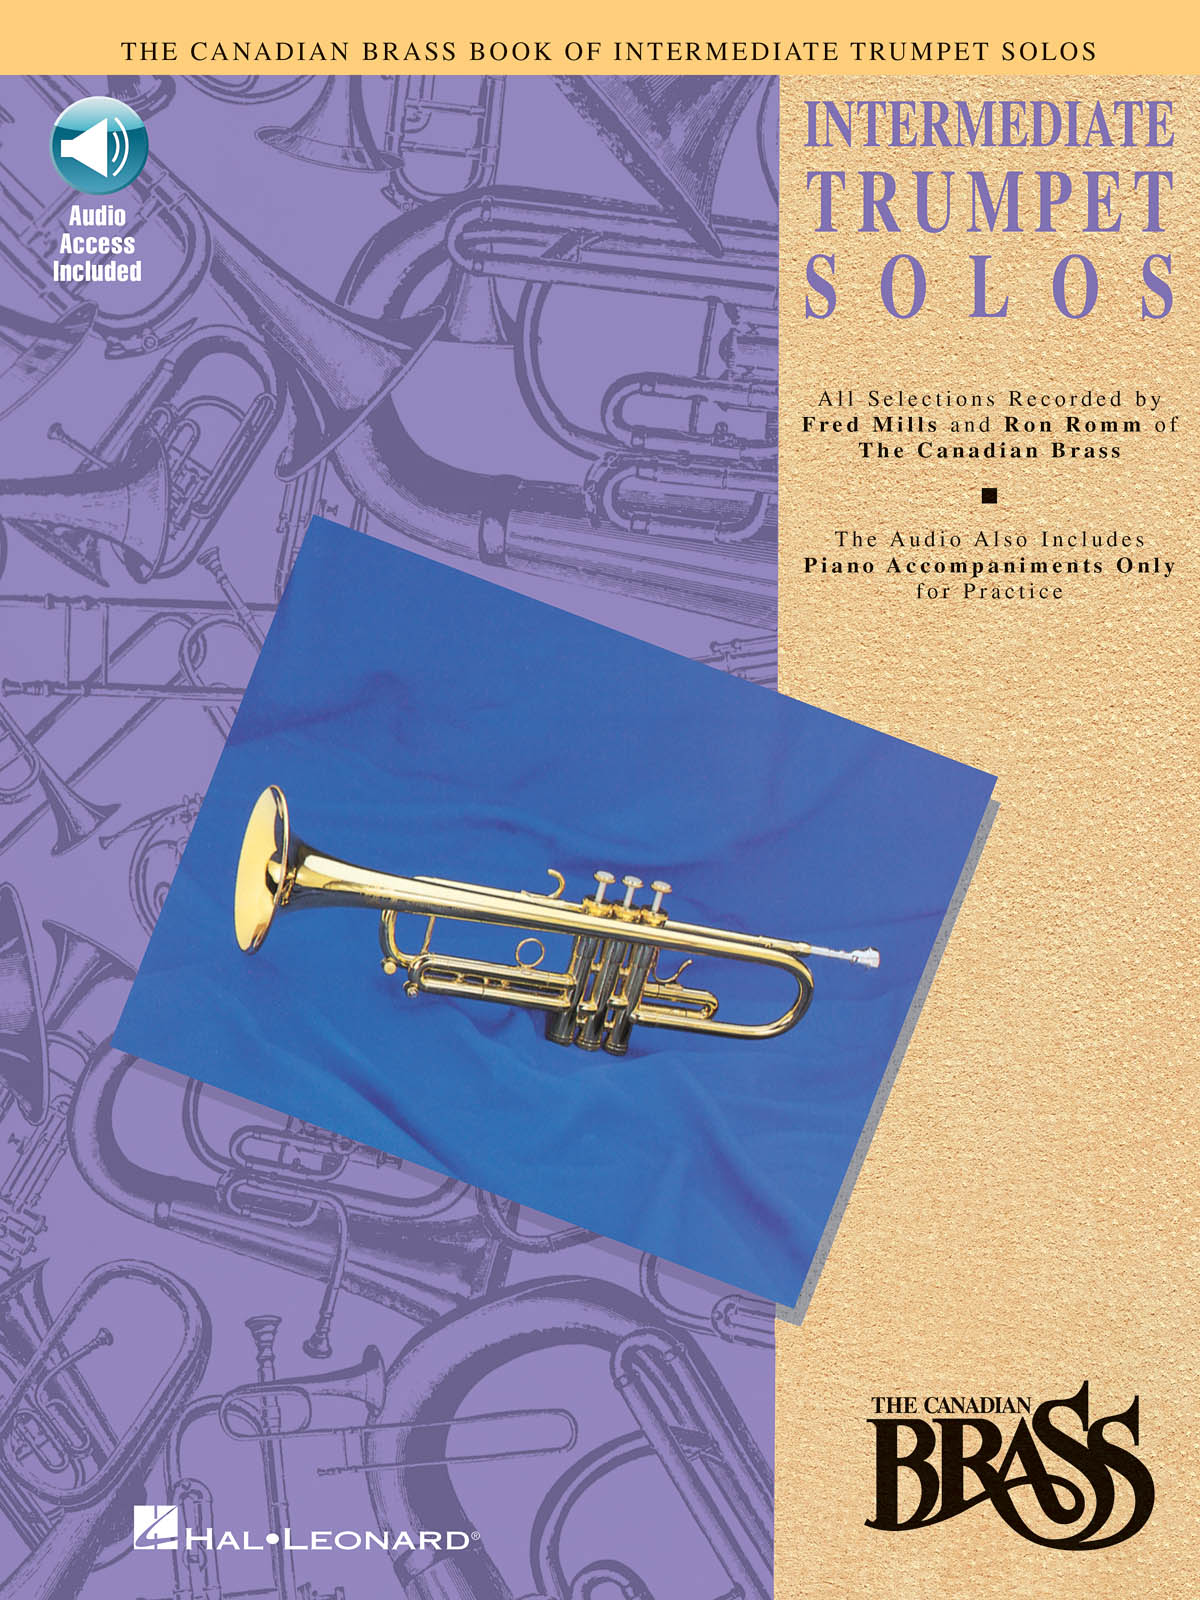 The Canadian Brass: Canadian Brass Book Of Intermediate Trumpet Solos: Trumpet